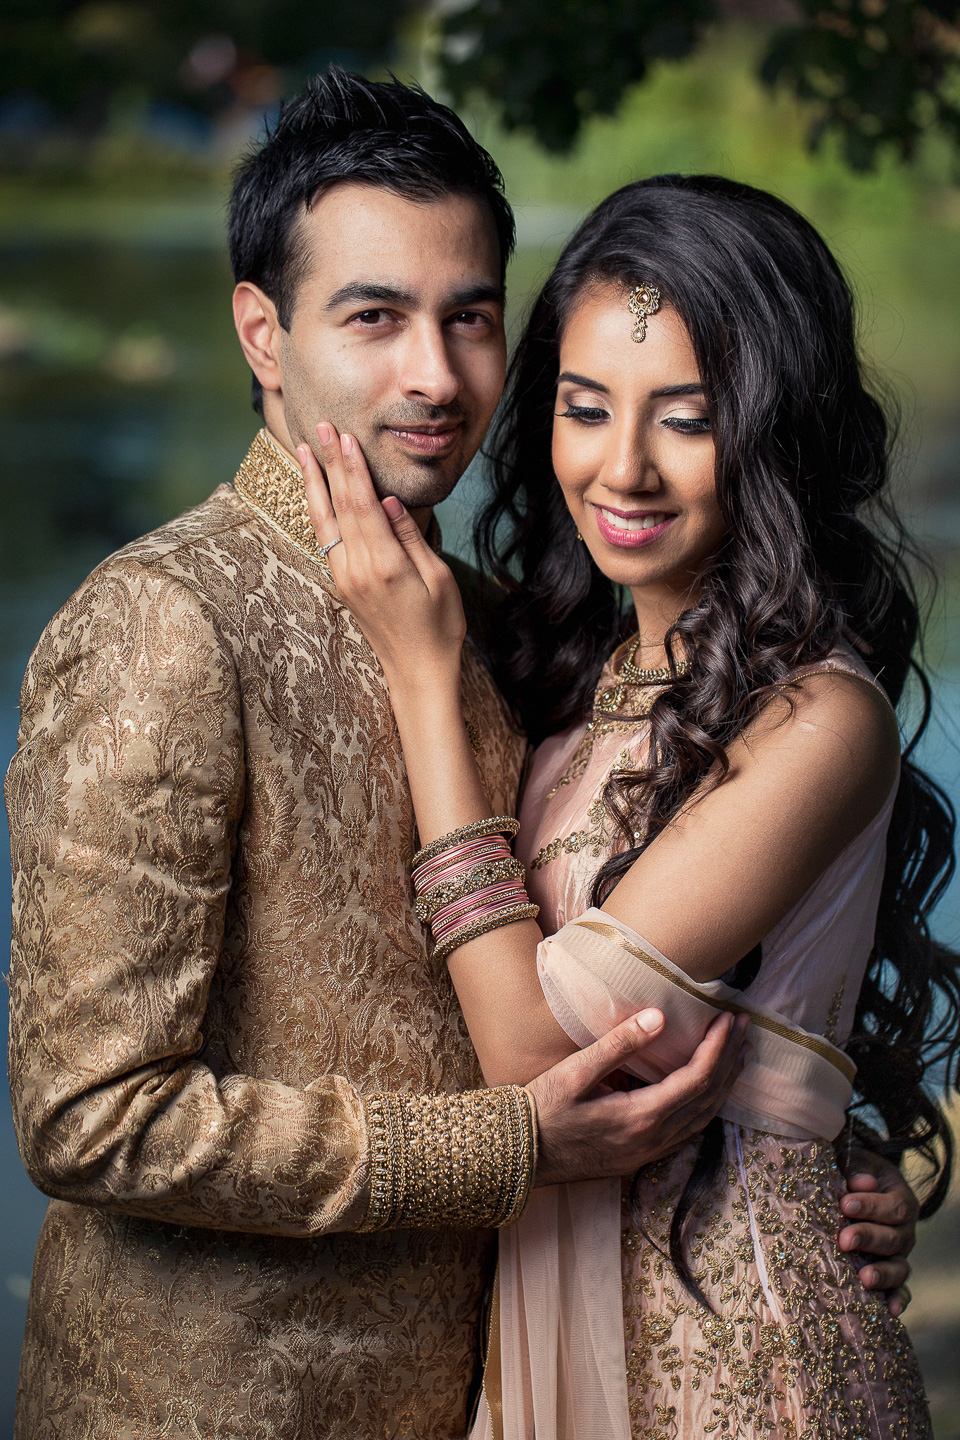 London Wedding Photographer Engagement Photoshoot London Indian Wedding -2.jpg